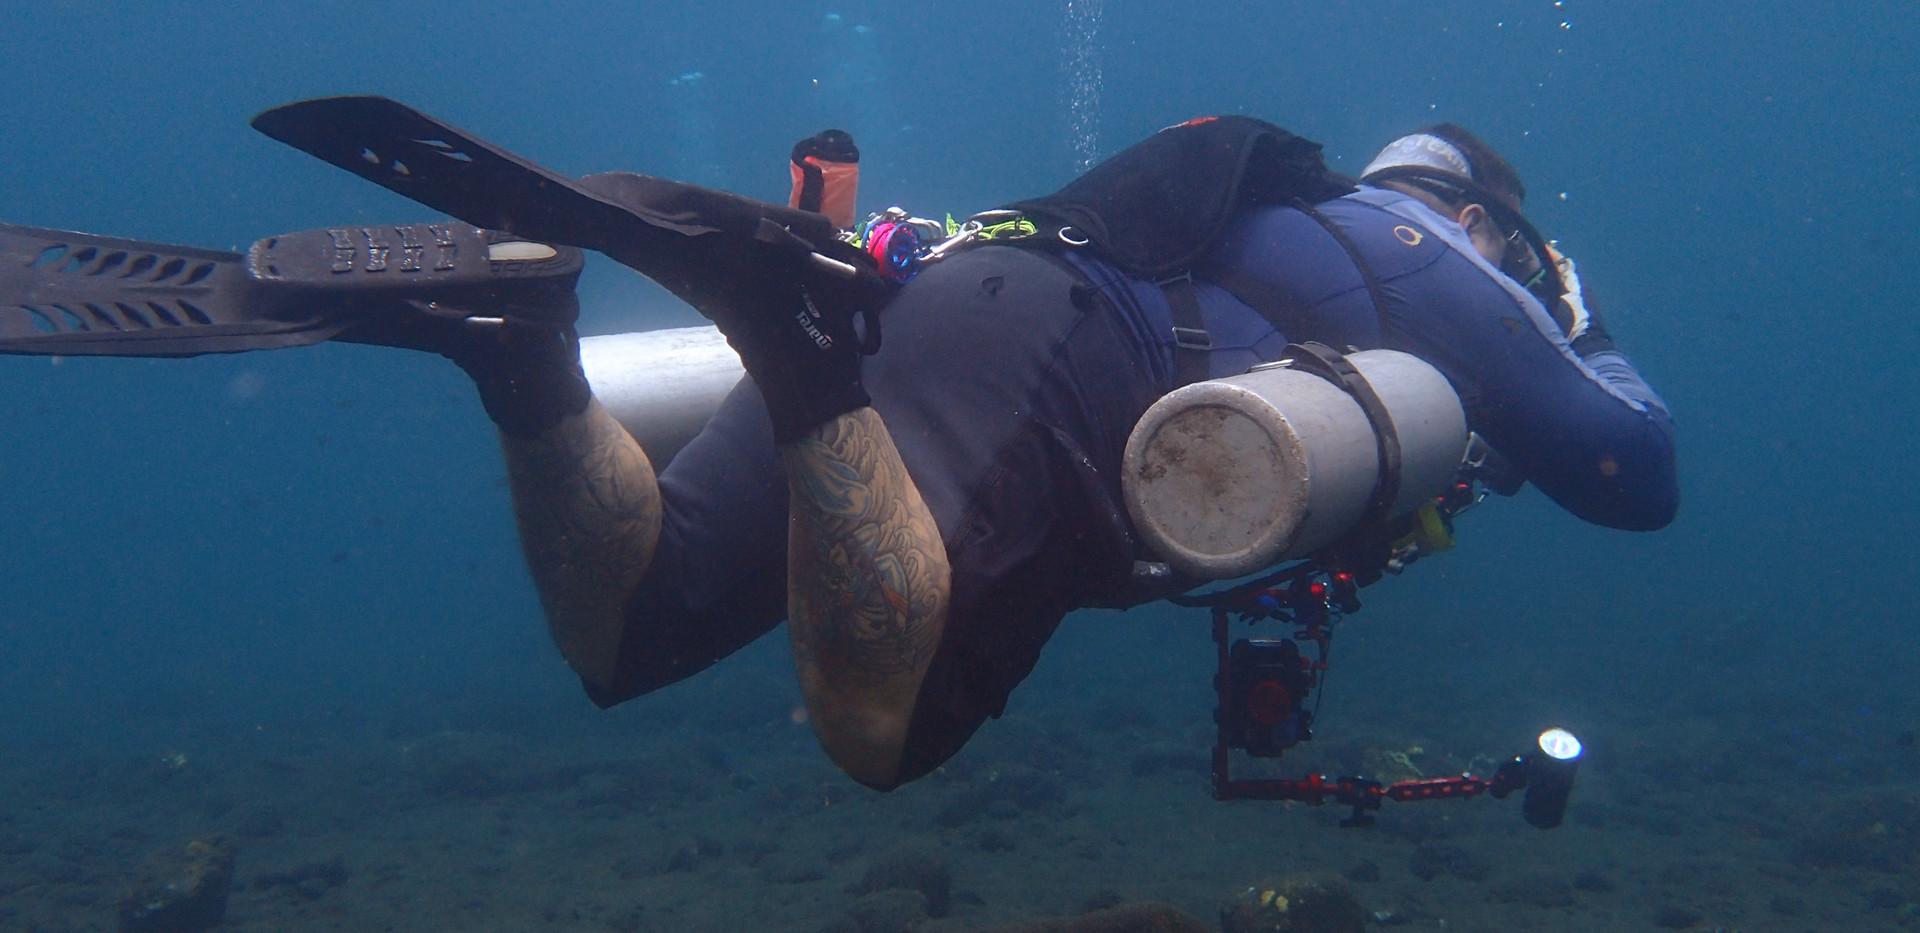 SideMount and Underwater photography div